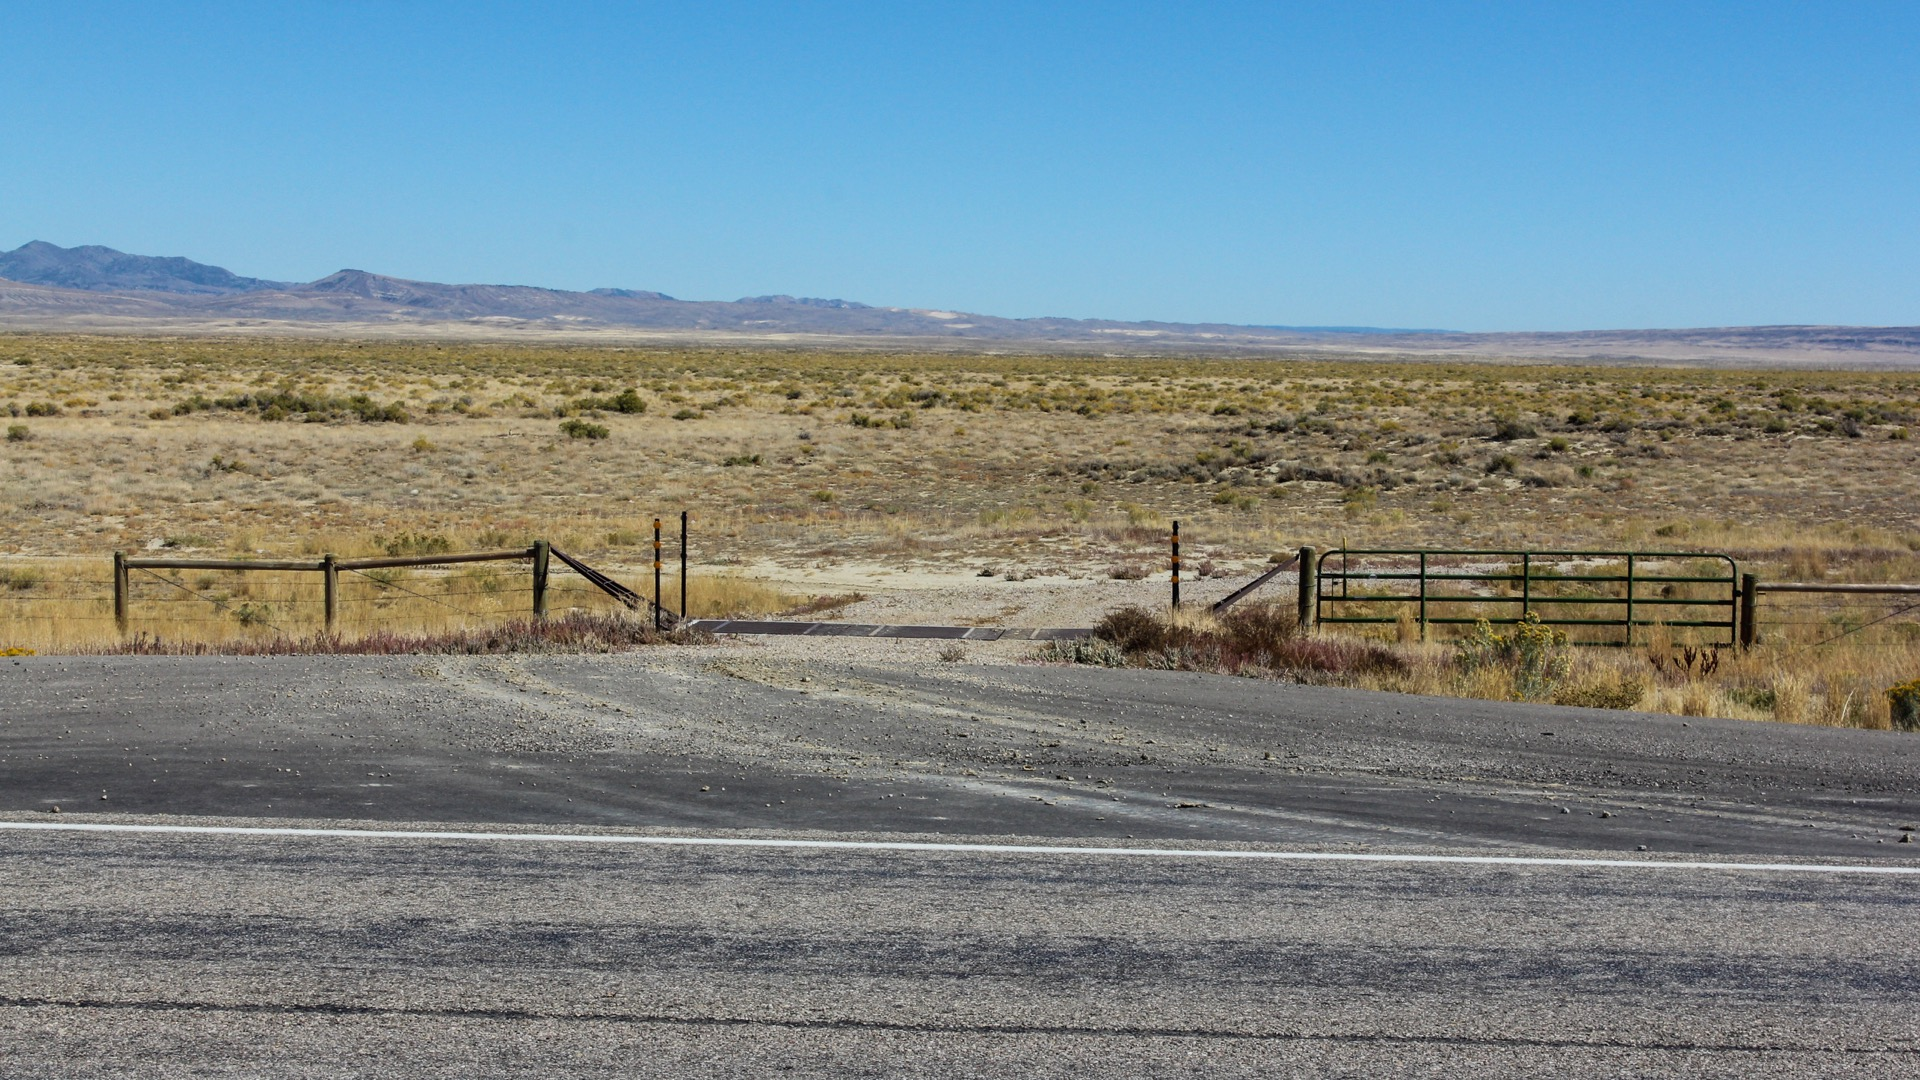 Entrance to the property off of Highway 287